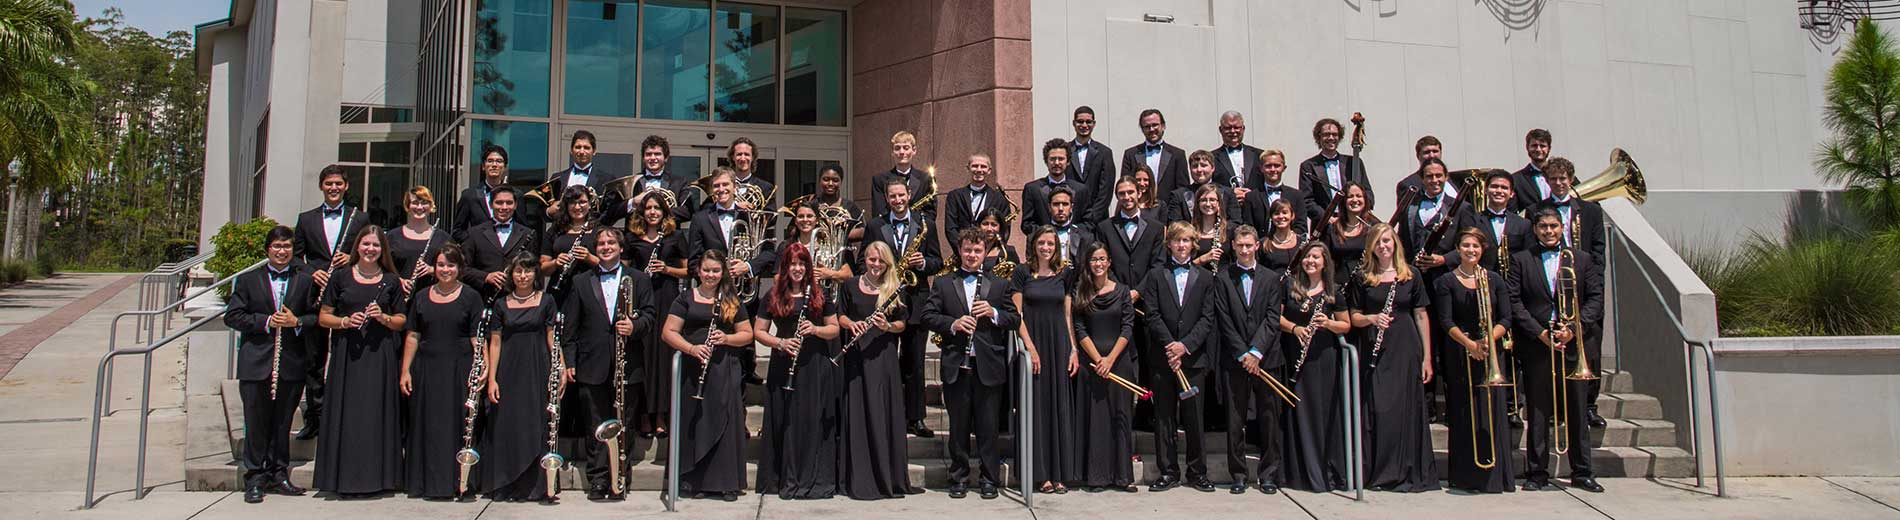 photo shows FGCU Wind Orchestra